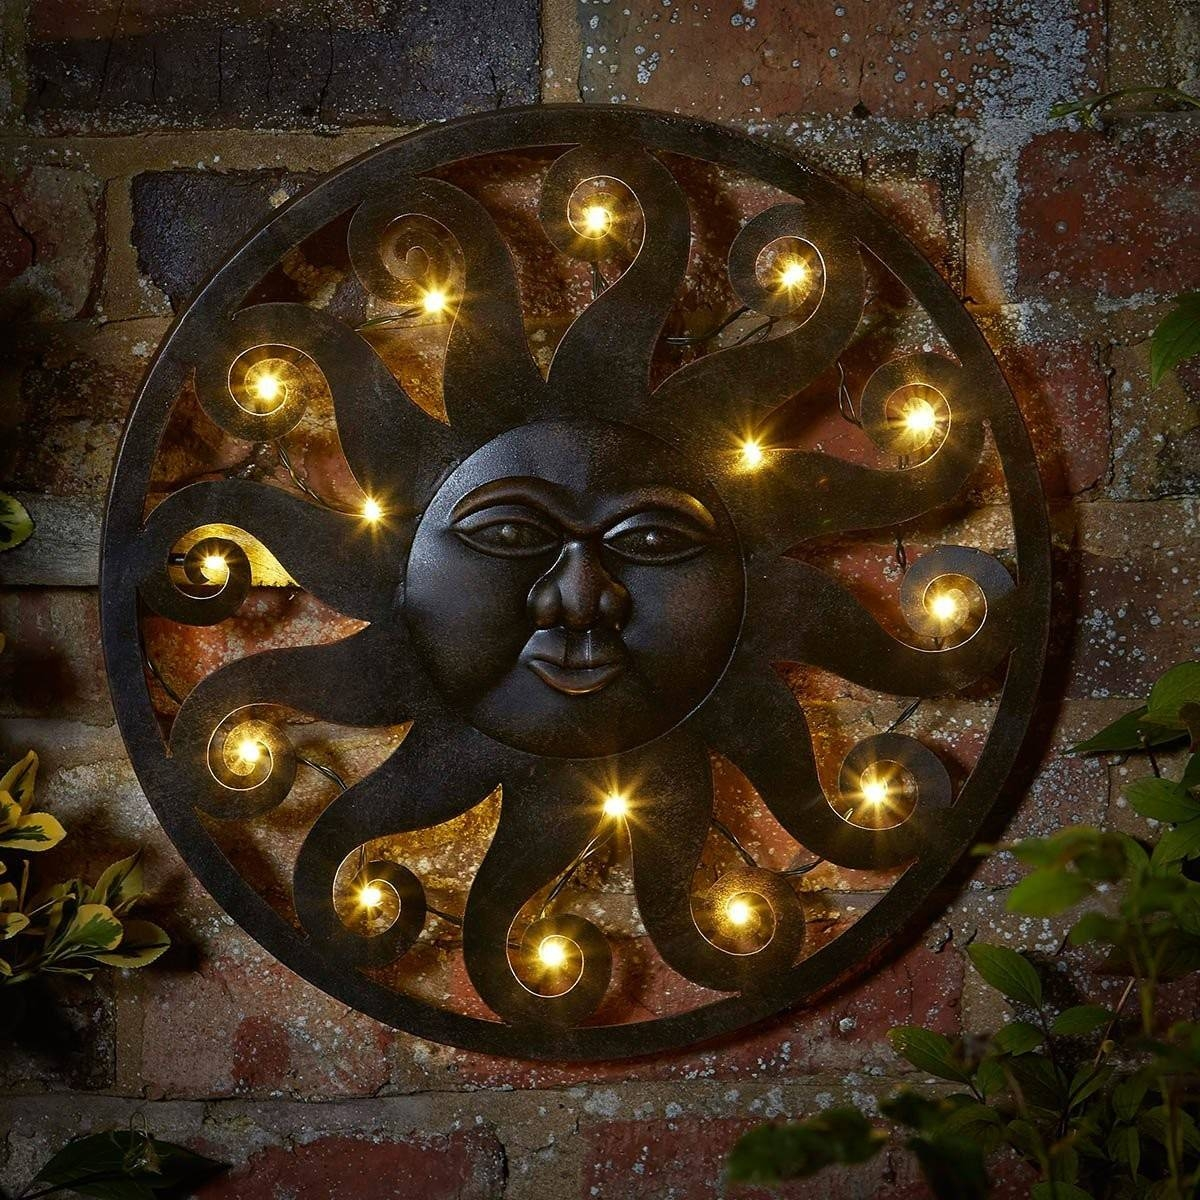 Outdoor Wall Decor Wood Decorative Outdoor Wall Plaques Vintage Pertaining To Recent Moon Outdoor Metal Wall Art (View 4 of 20)